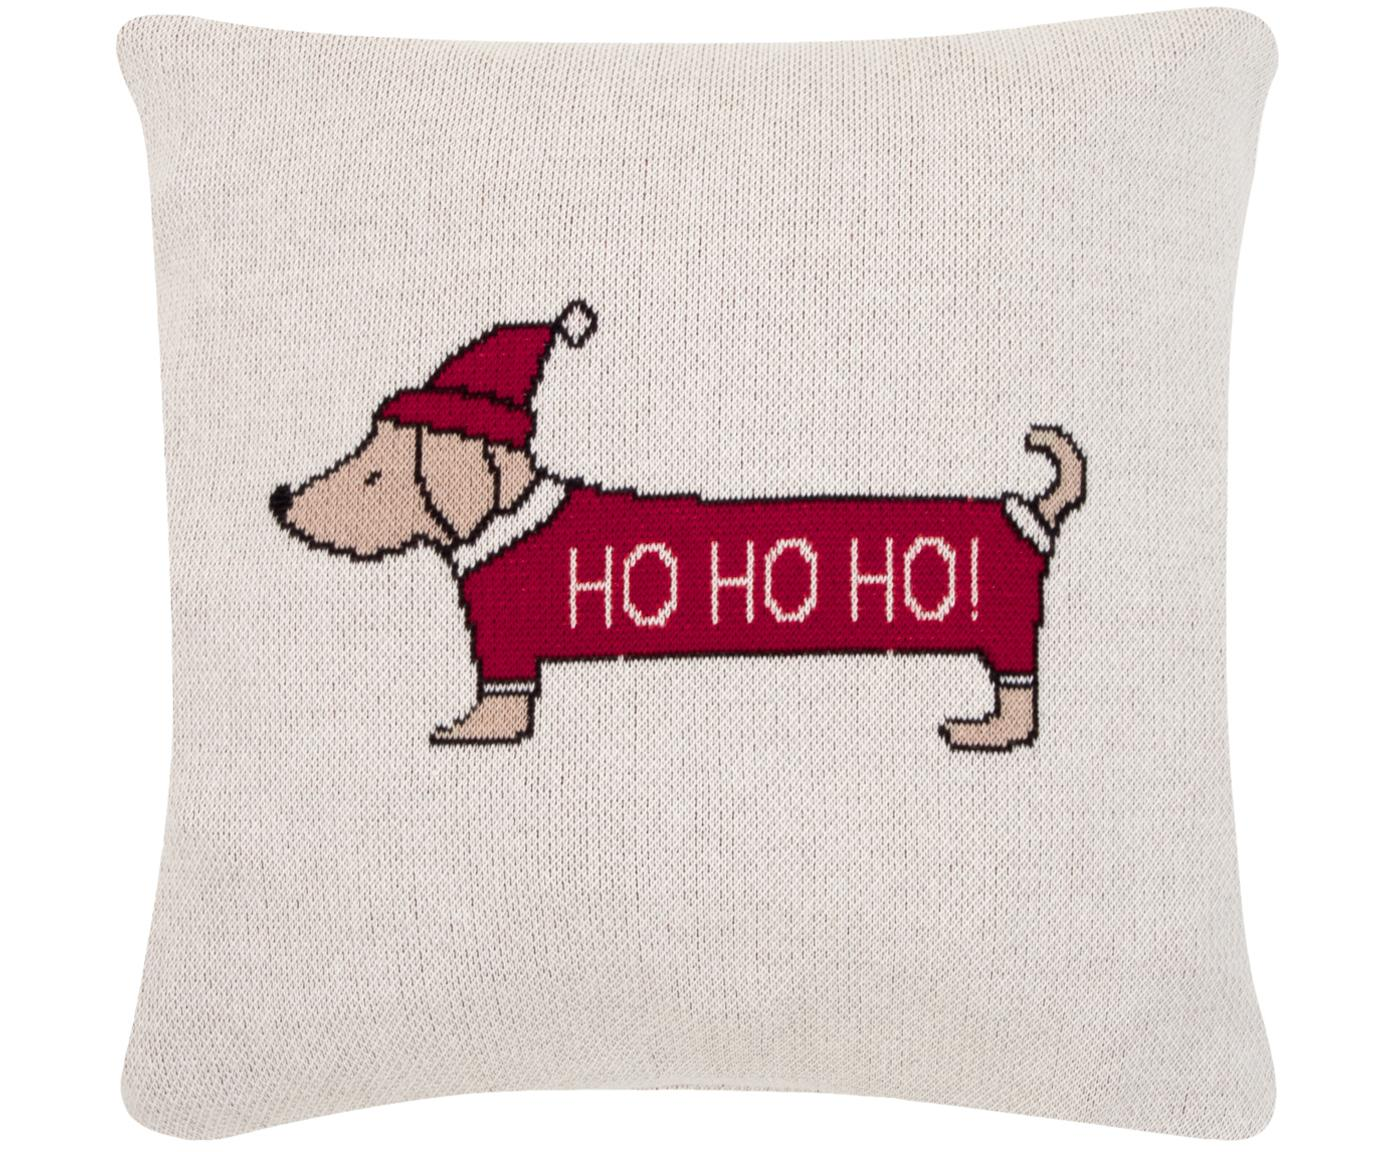 Kussenhoes Santas Little Helper, 100% katoen, Multicolour, 40 x 40 cm